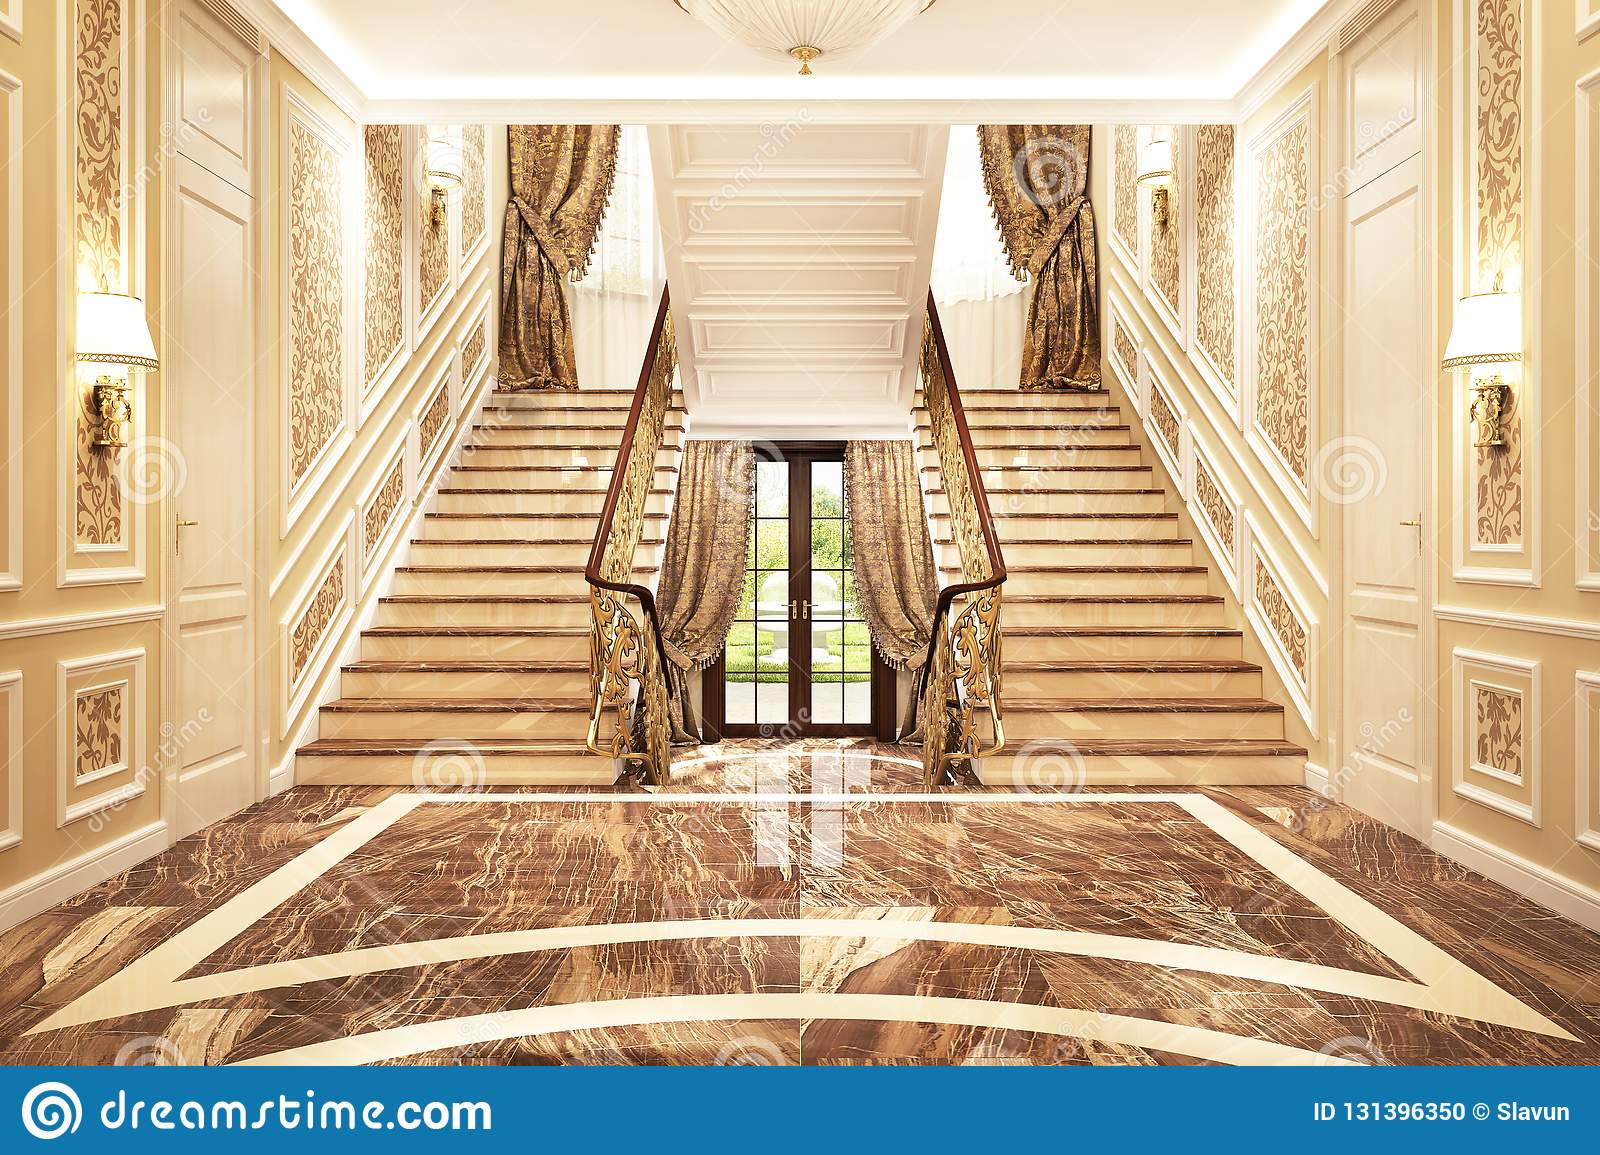 Interior Design In A Classic Style Stock Photo Image Of Gold Large 131396350